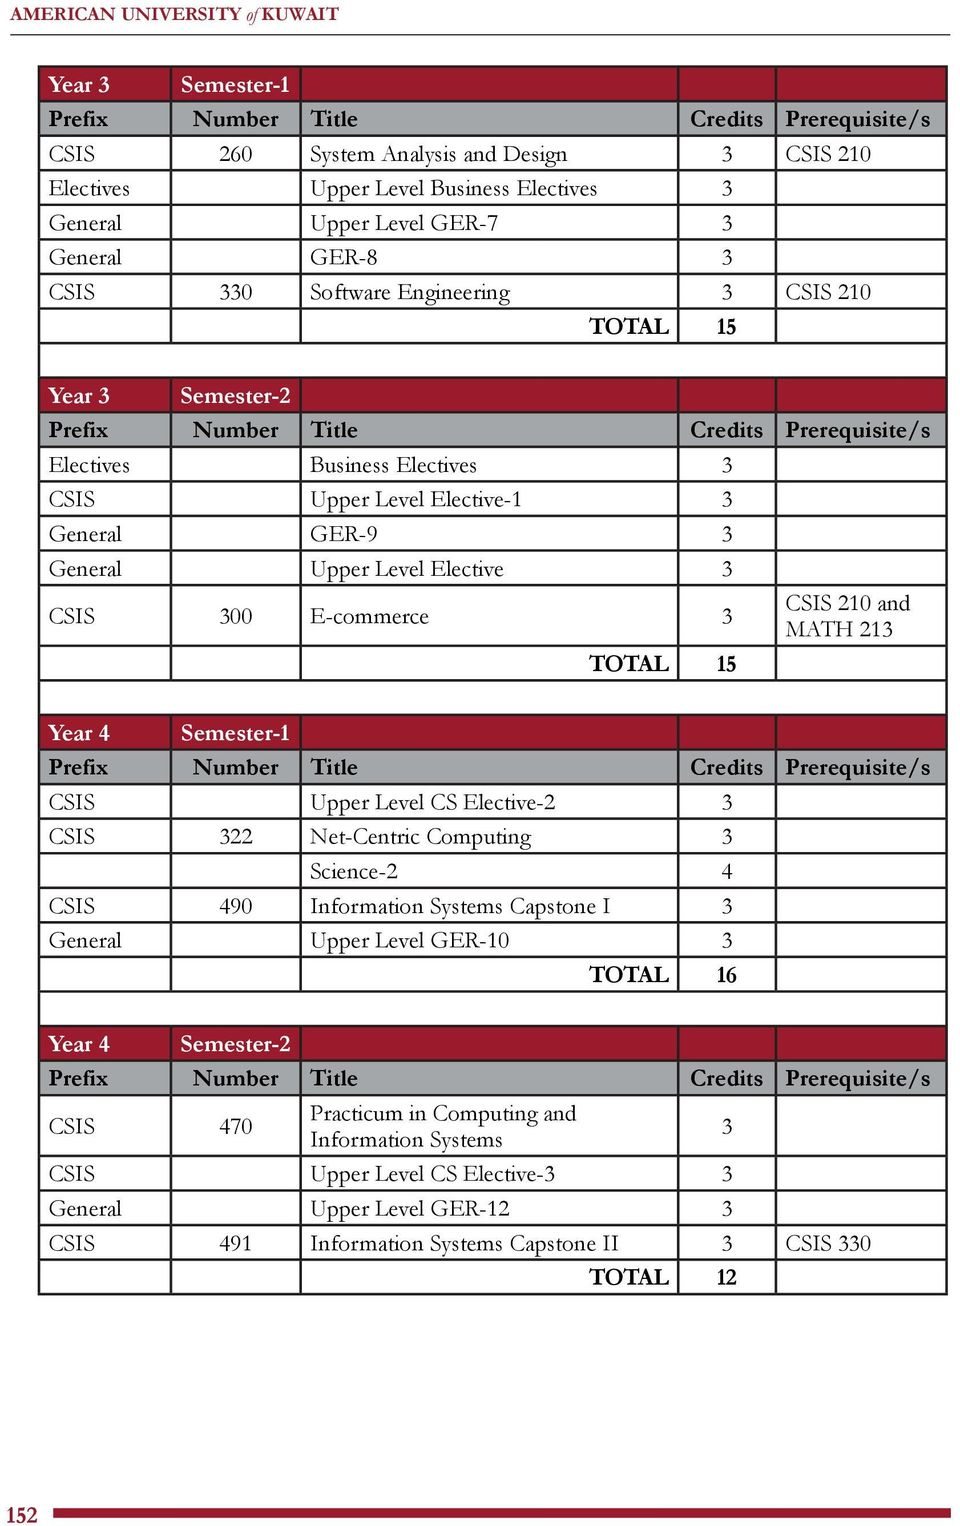 CSIS 210 and MATH 213 Year 4 Semester-1 CSIS Upper Level CS Elective-2 3 CSIS 322 Net-Centric Computing 3 Science-2 4 CSIS 490 Information Systems Capstone I 3 General Upper Level GER-10 3 TOTAL 16